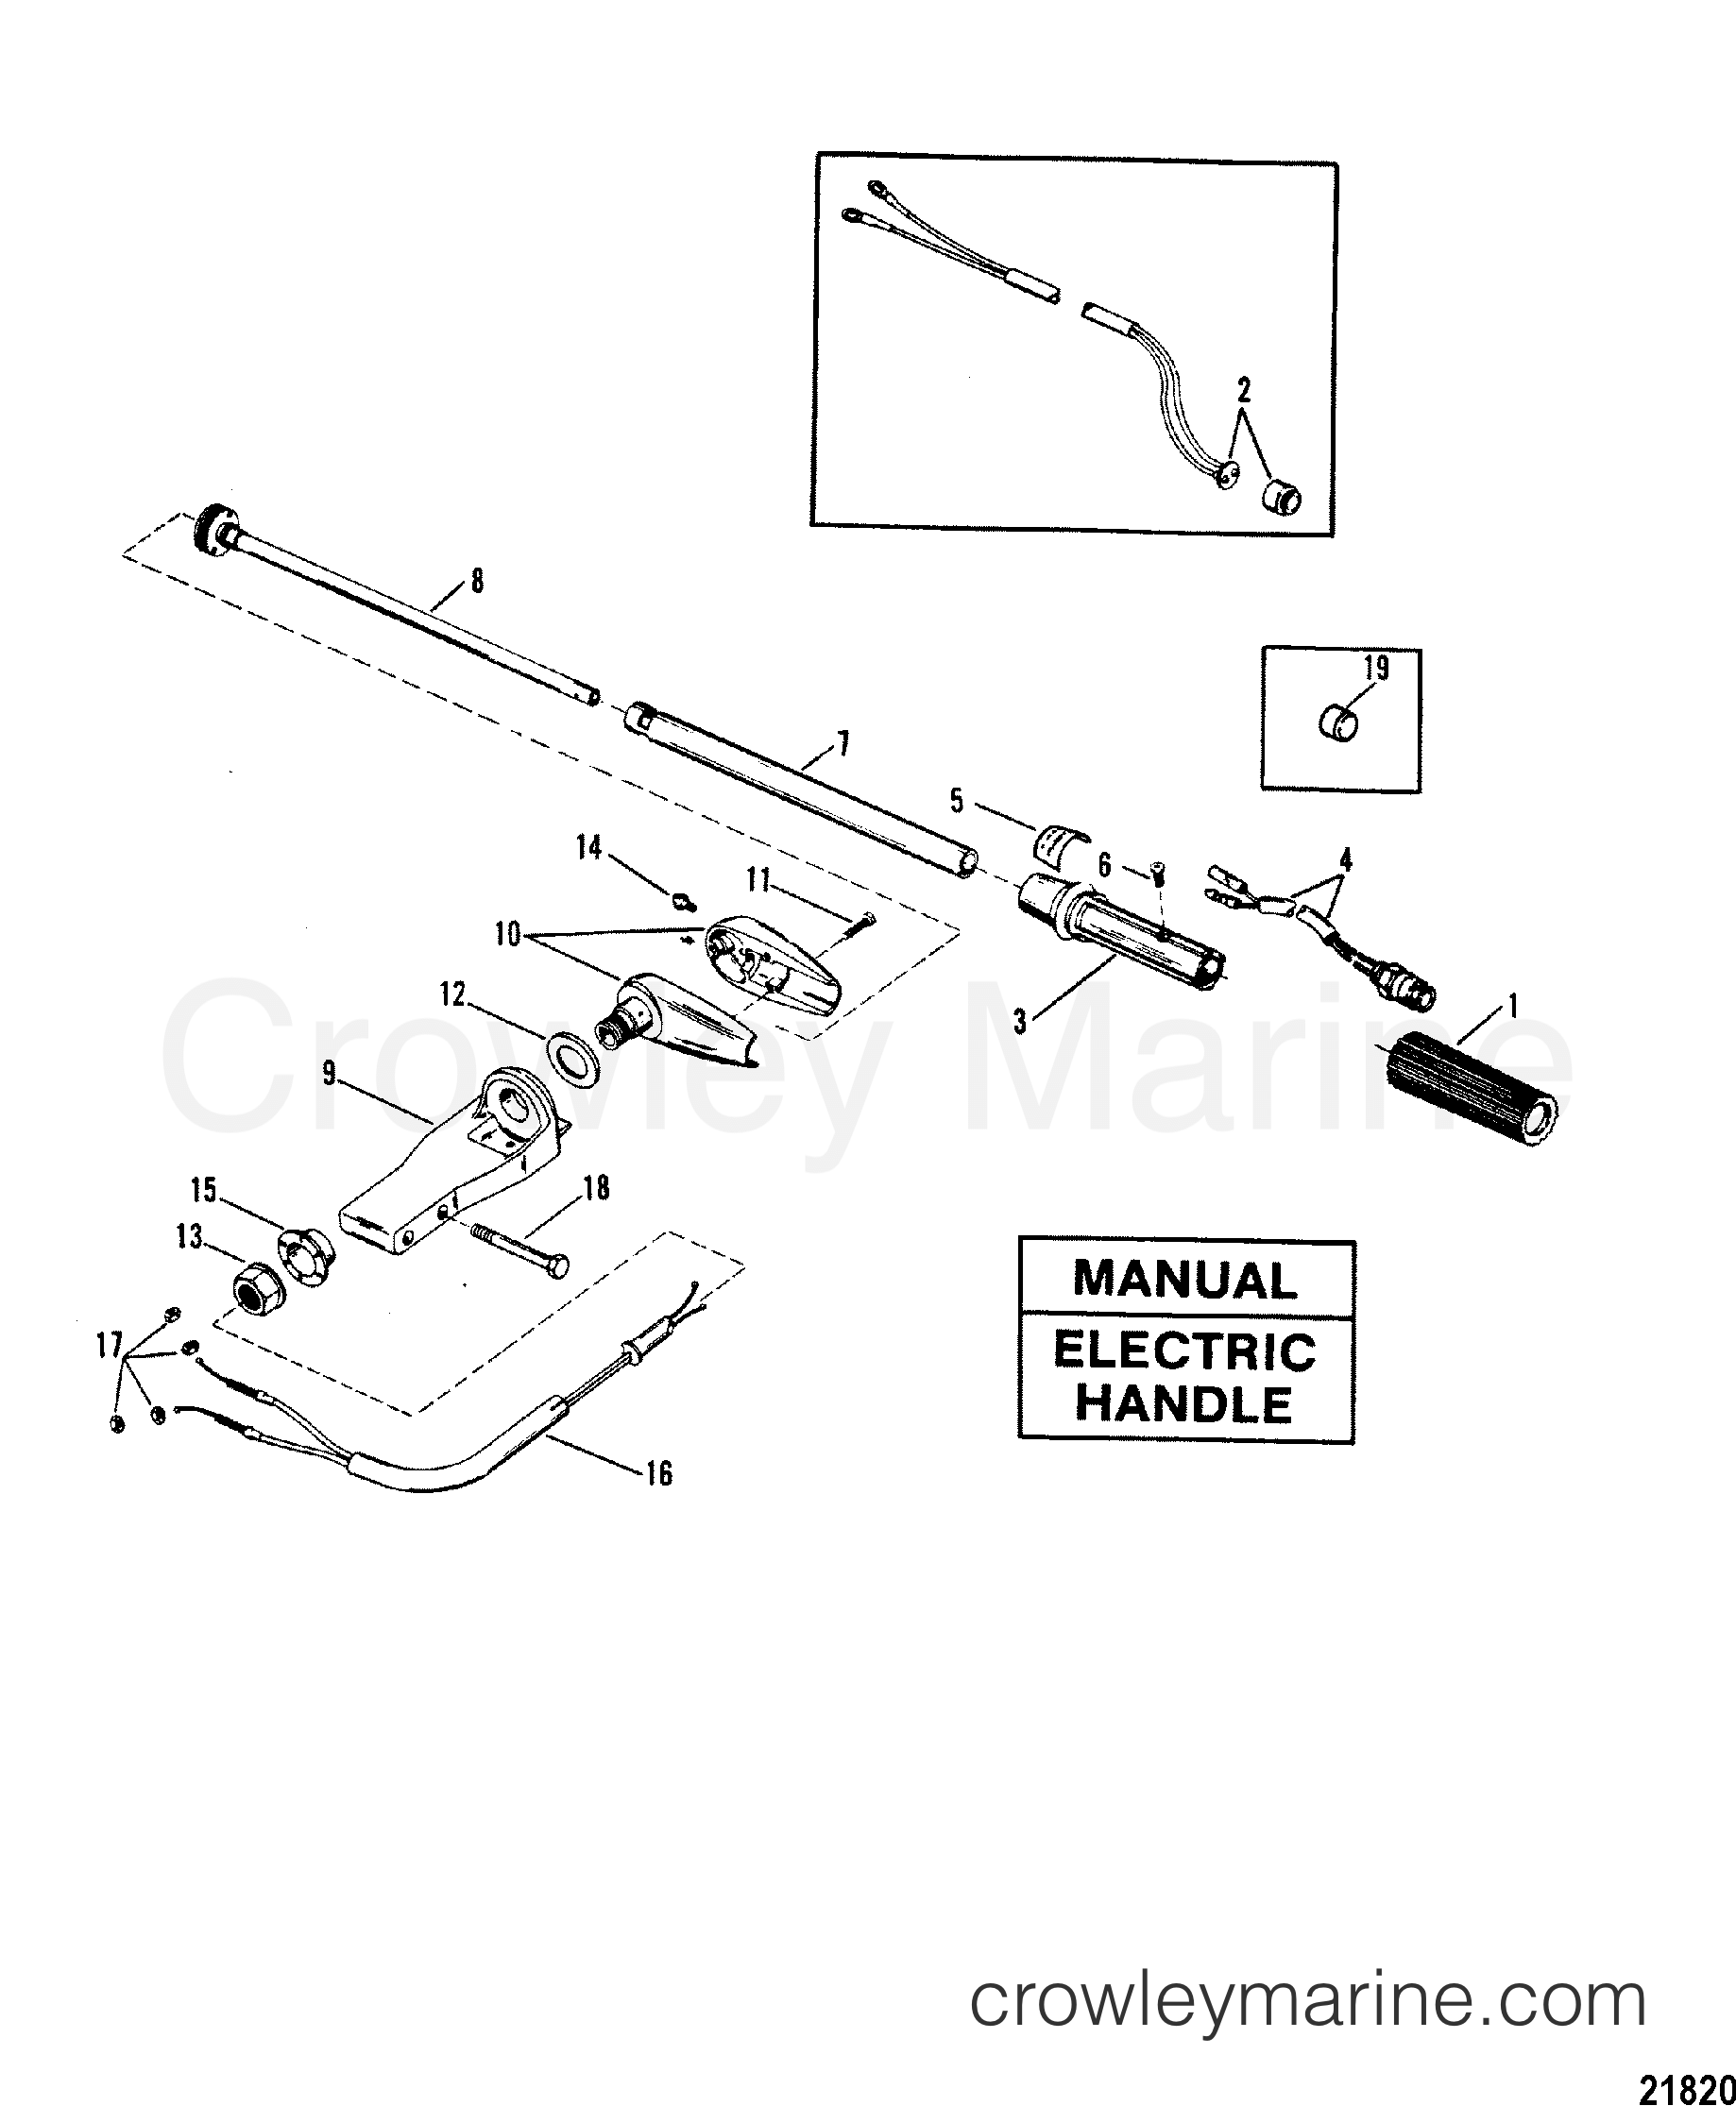 1988 Mariner Outboard 25 [MLH] - 7025211ND - STEERING HANDLE ASSEMBLY(MANUAL/ELECTRIC HANDLE) section